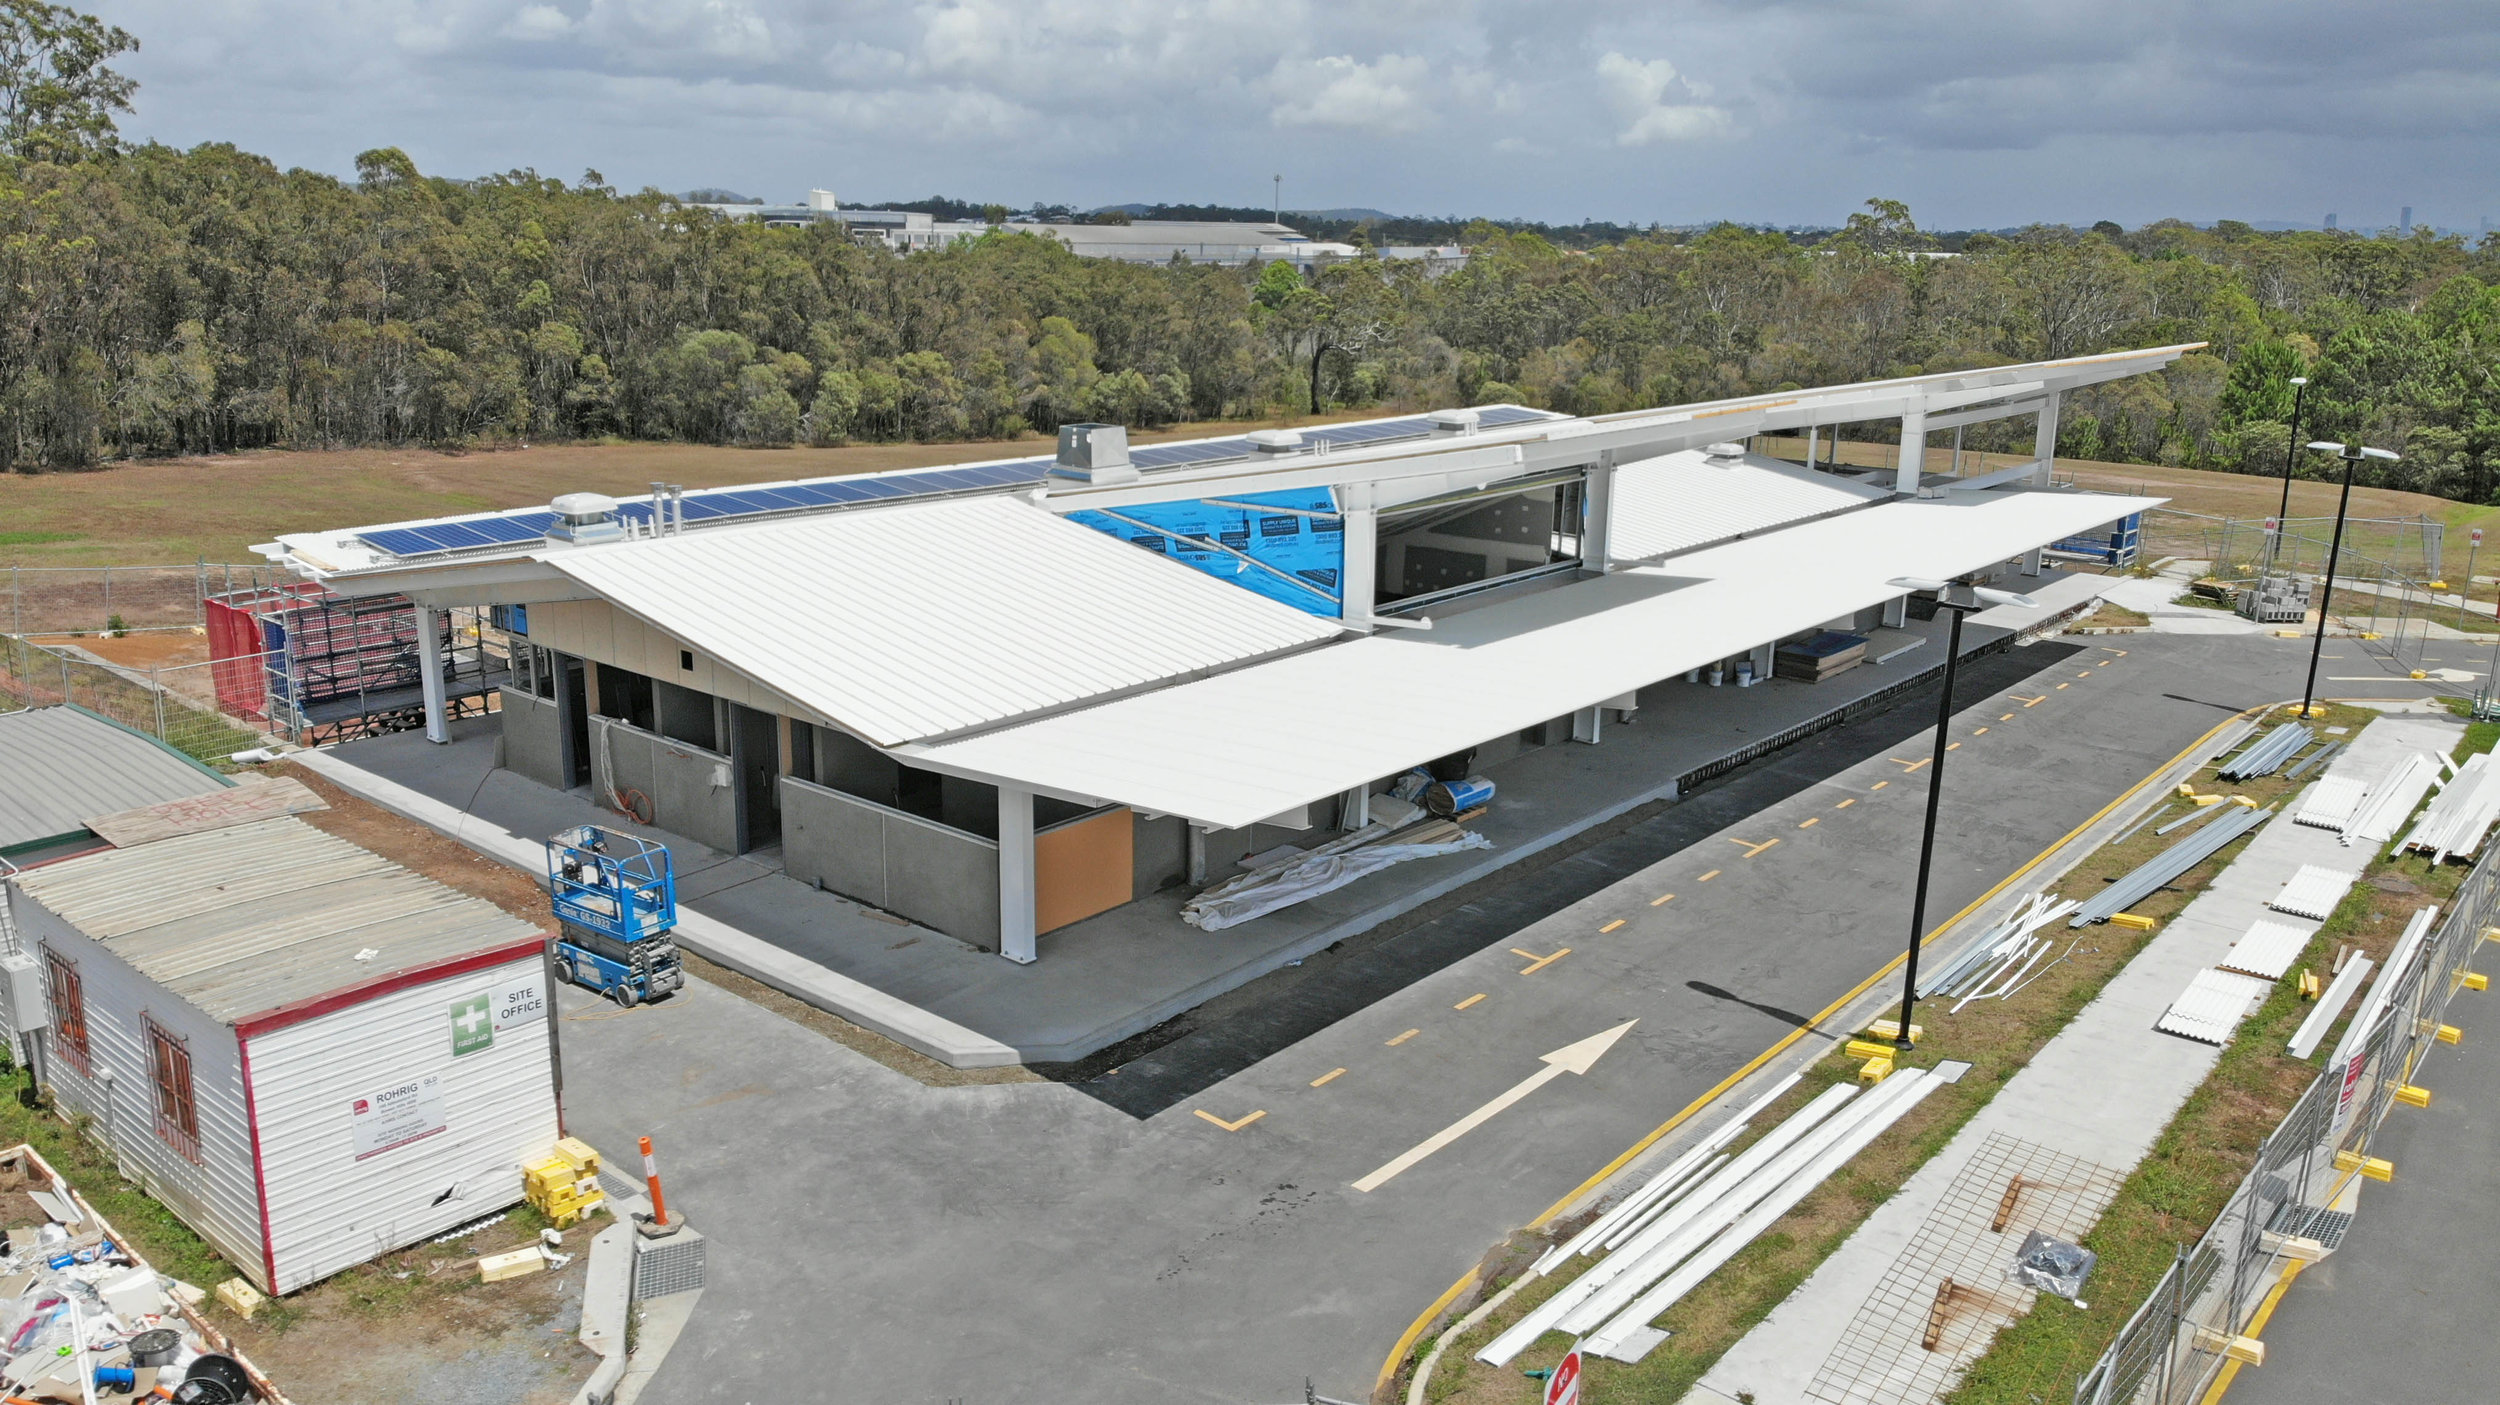 Wynnum -Manly Meals on Wheels new Facility under Construction